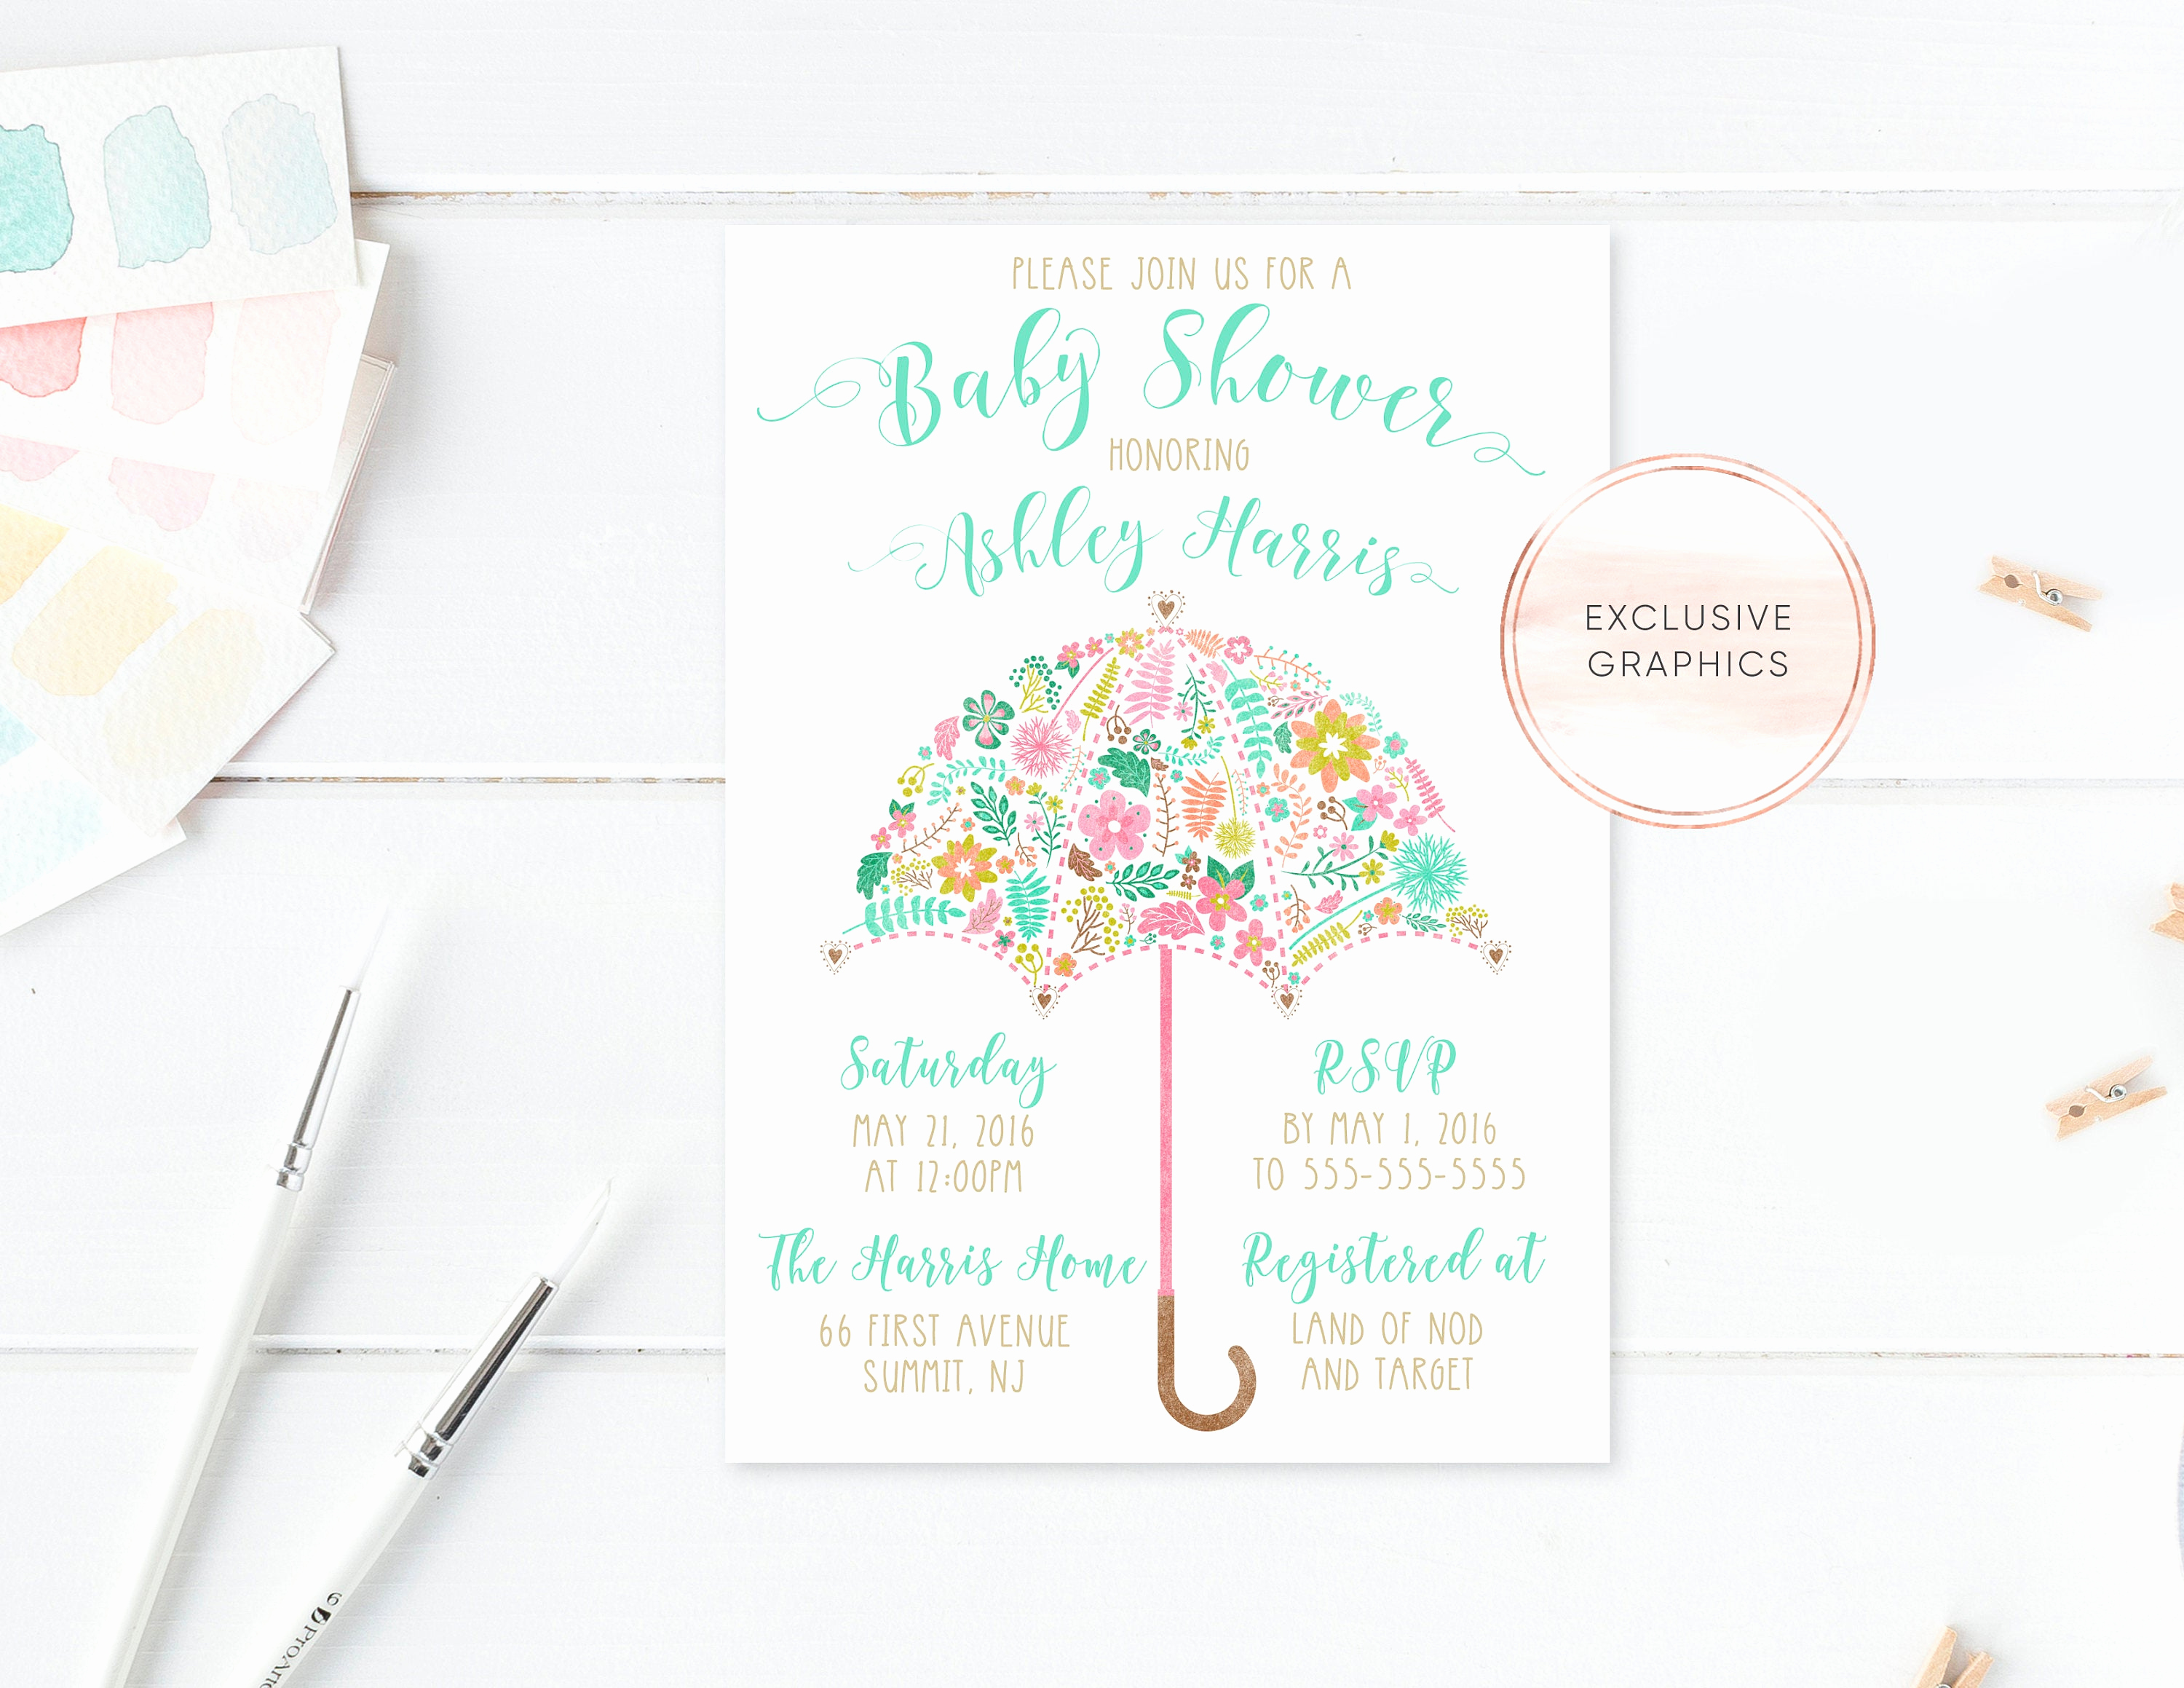 Umbrella Baby Shower Invitation Awesome Umbrella Baby Shower Invitation Floral Baby Shower